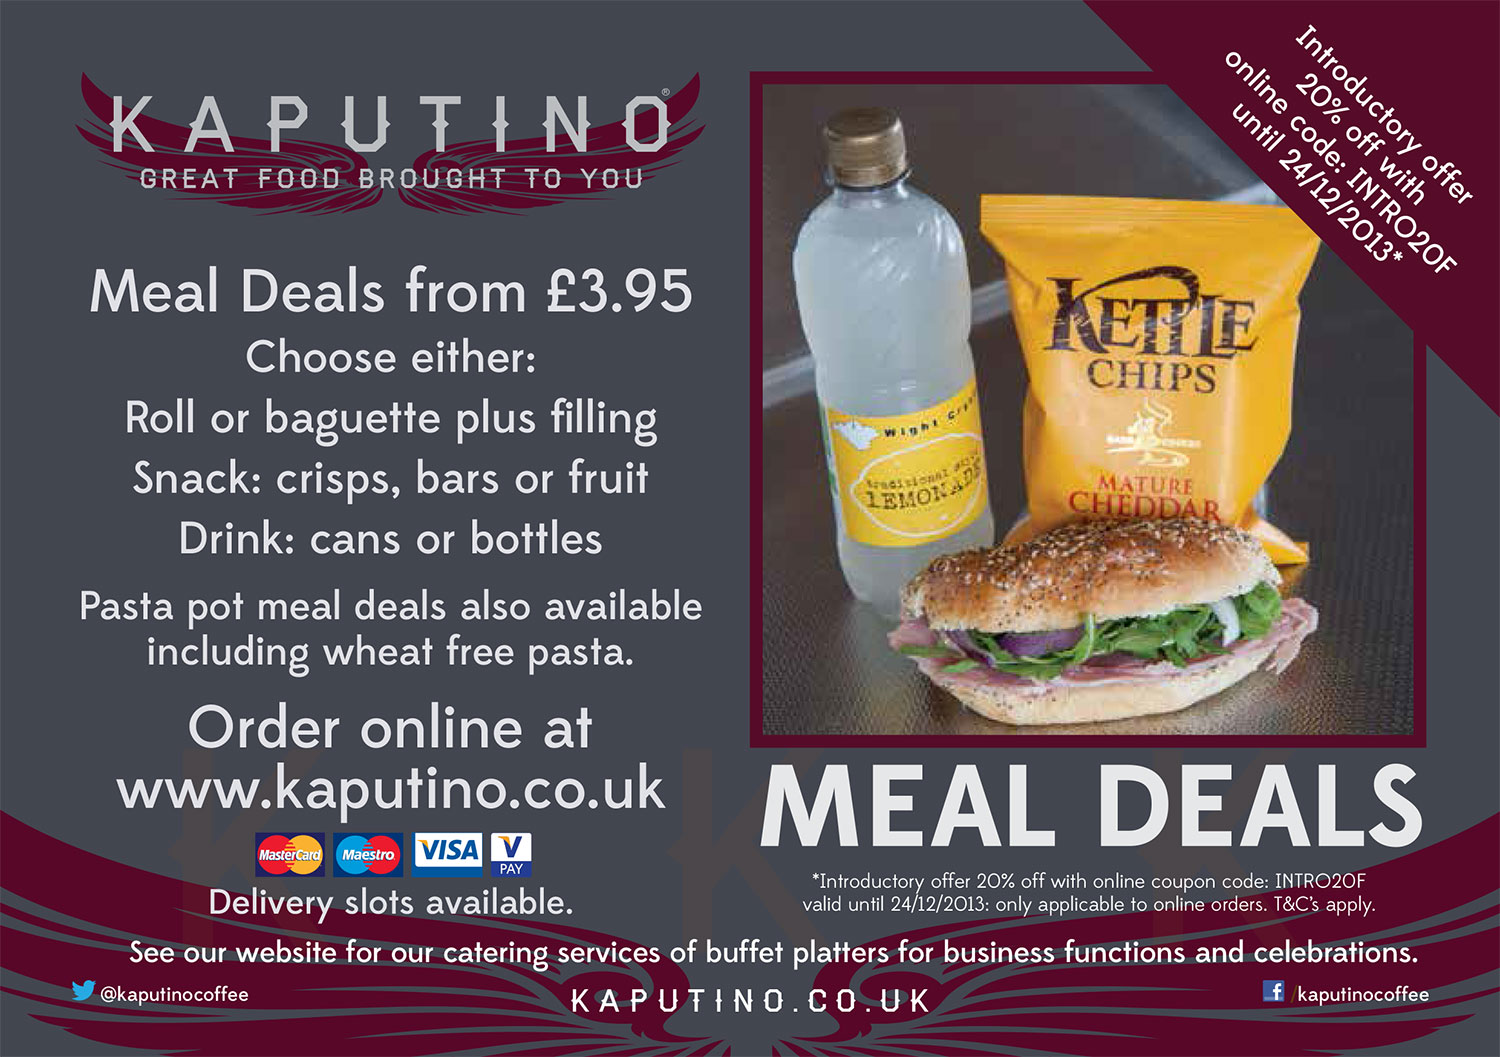 Isle of Wight lunches from Kaputino